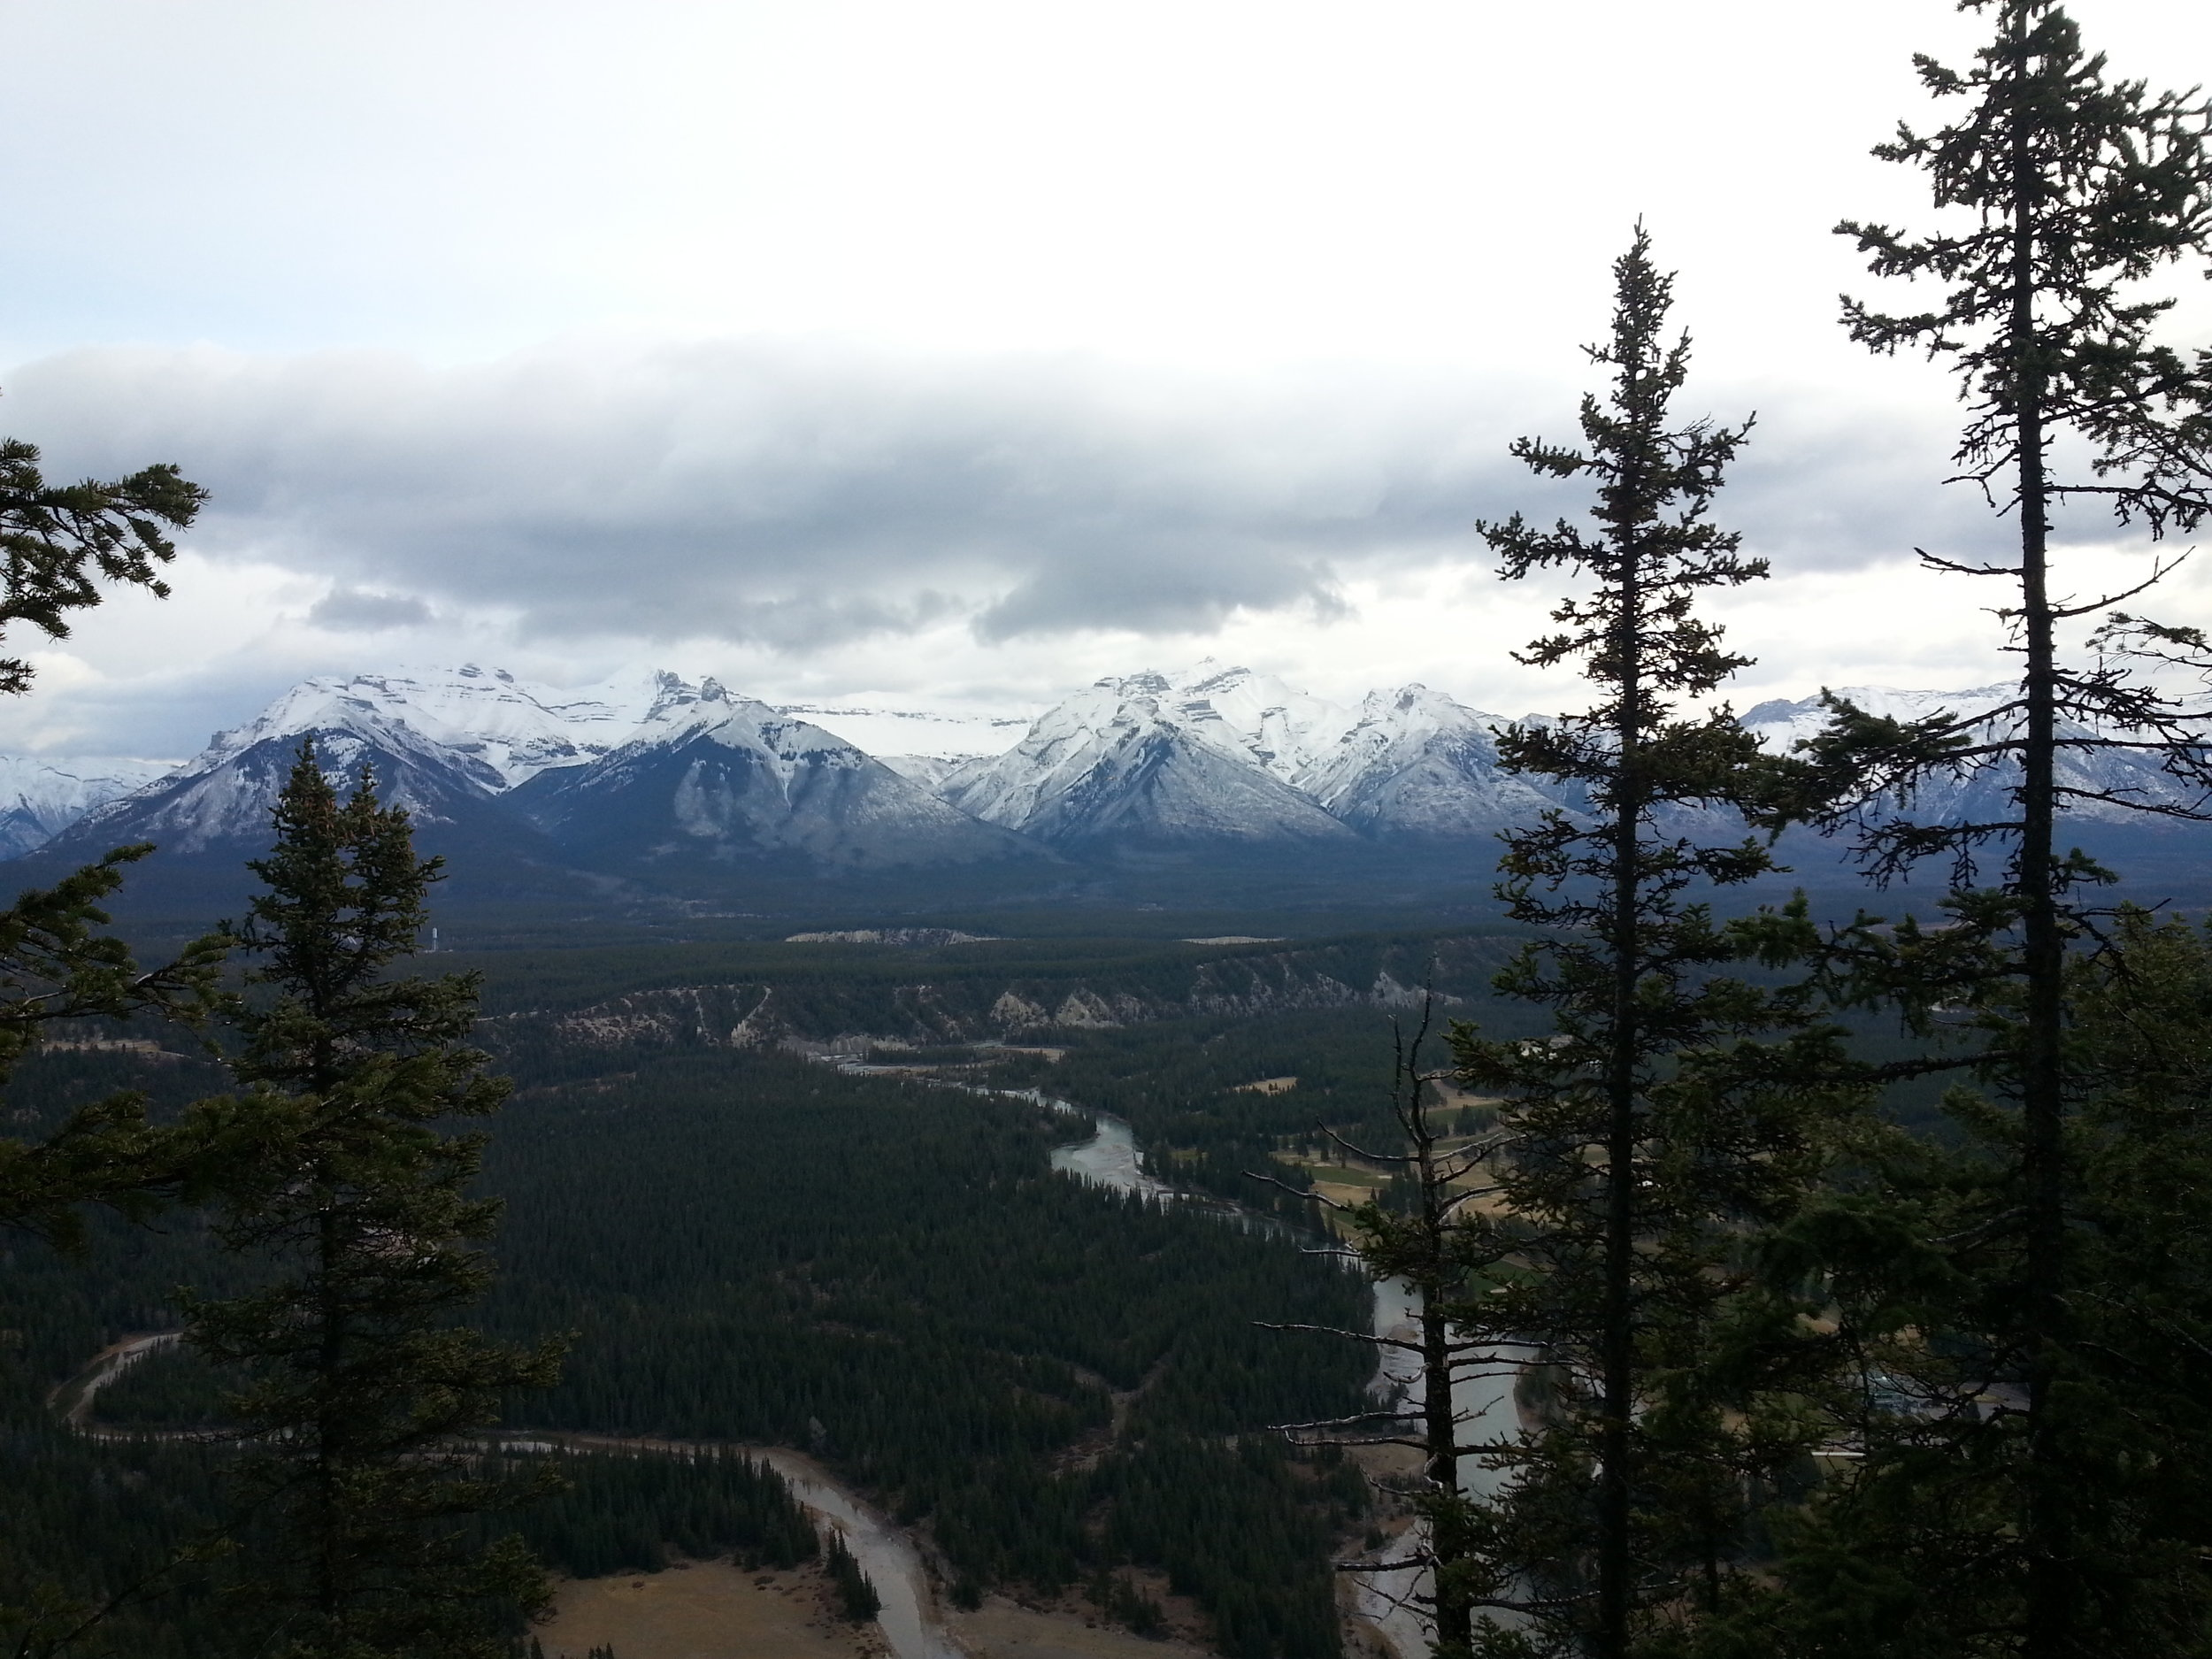 Atop Tunnel Mountain, looking southwest